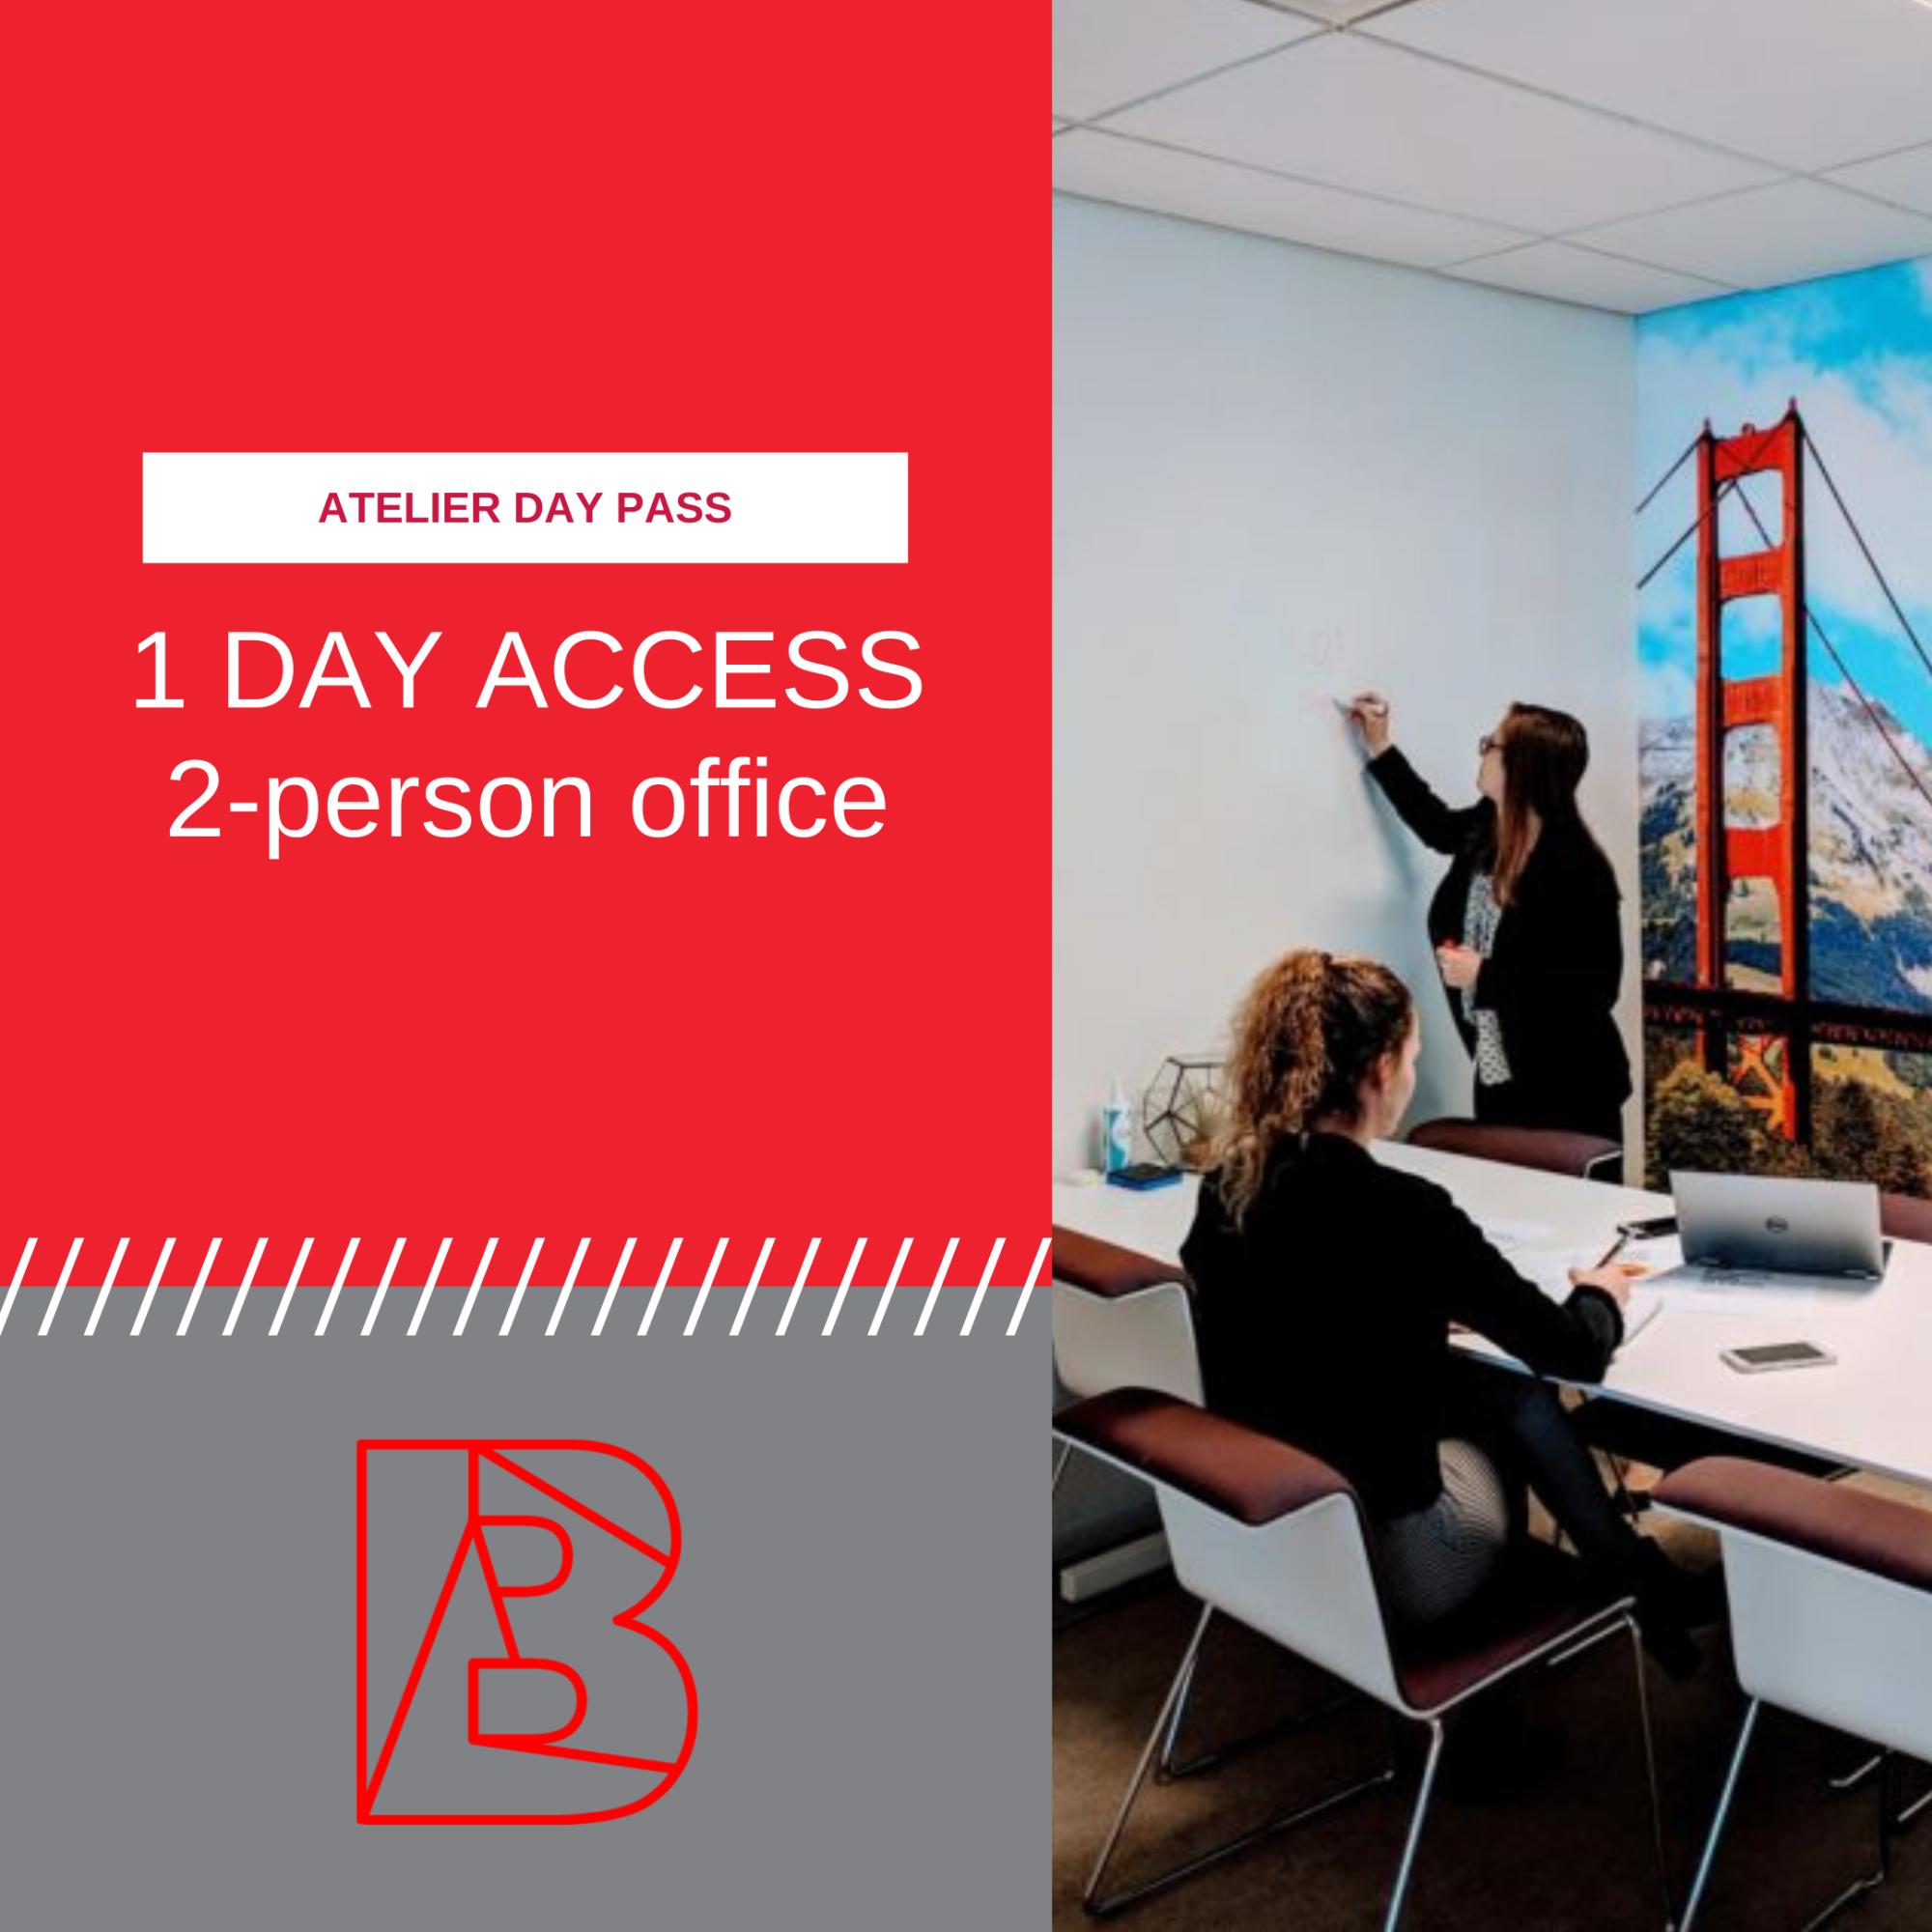 Day pass for two person office